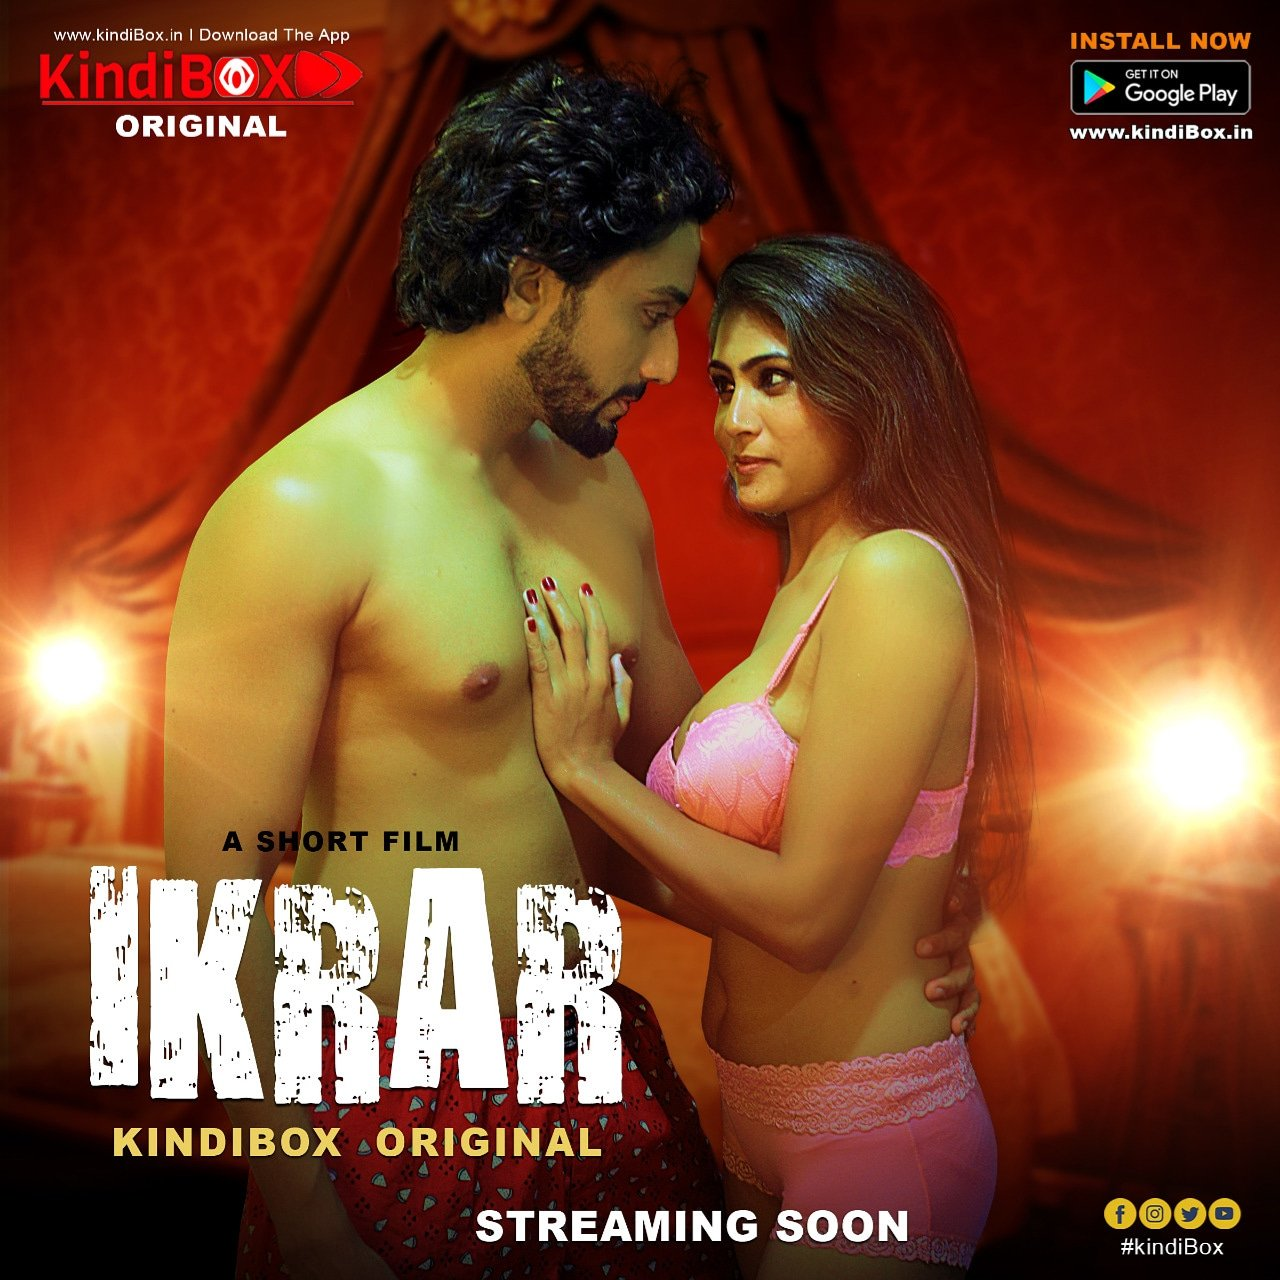 Ikrar 2020 S01 Hindi KindiBOX Original Web Series Official Trailer 1080p HDRip 44MB Download